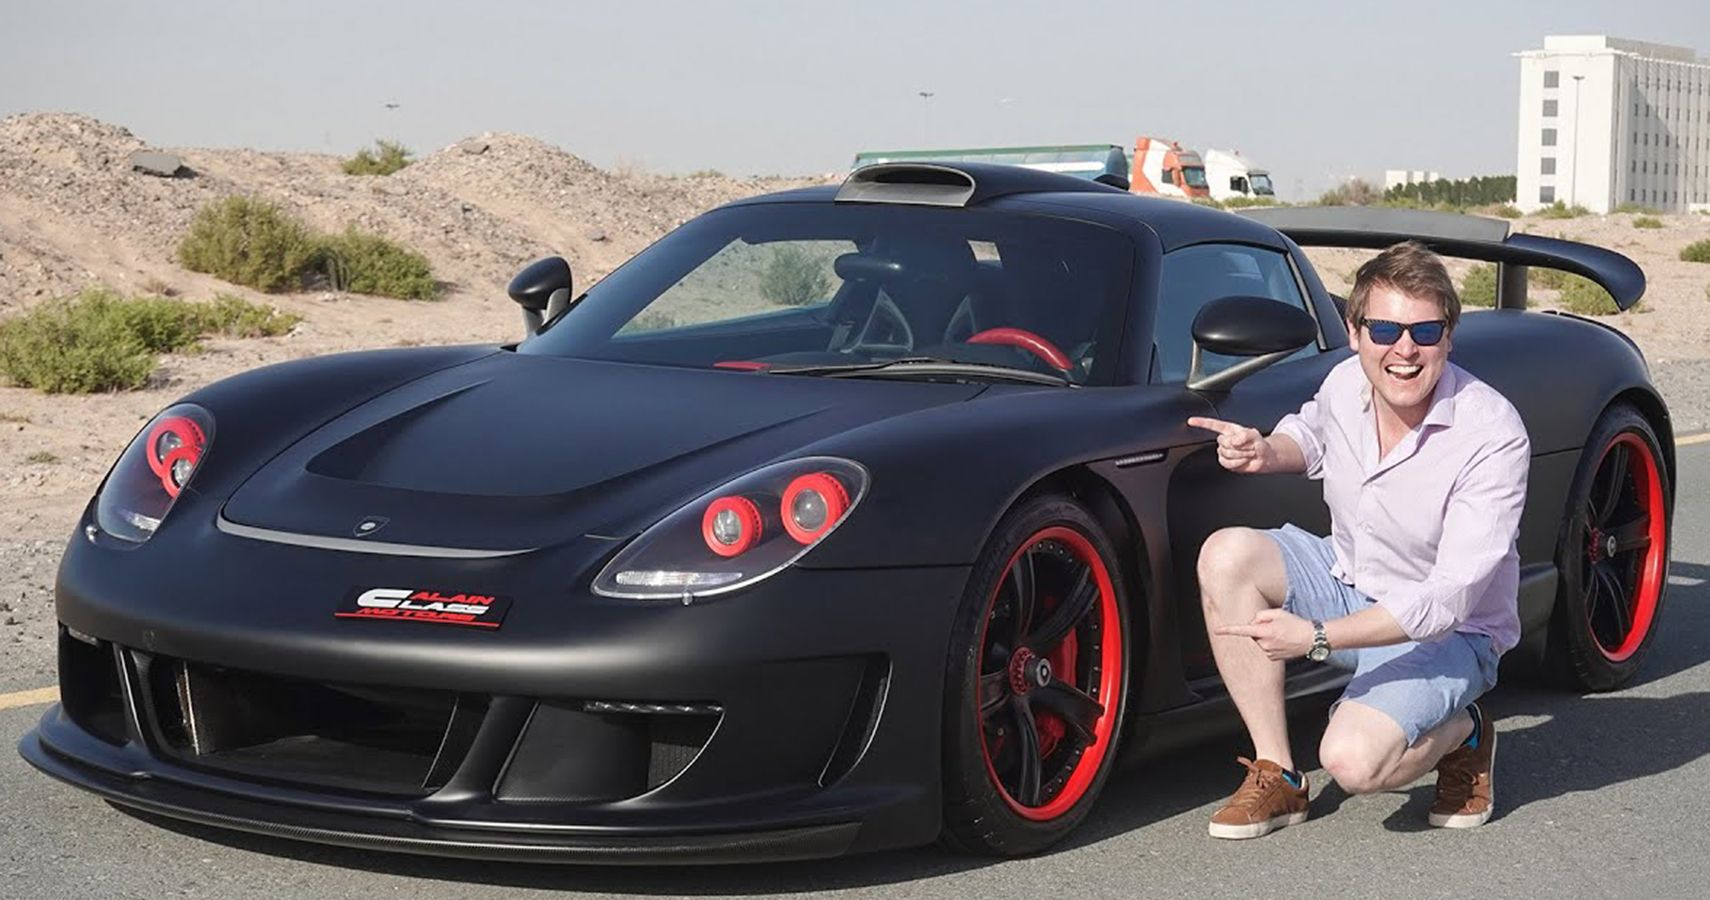 Shmee Drives This Wildly Tuned Gemballa Mirage GT Currently For Sale In Dubai